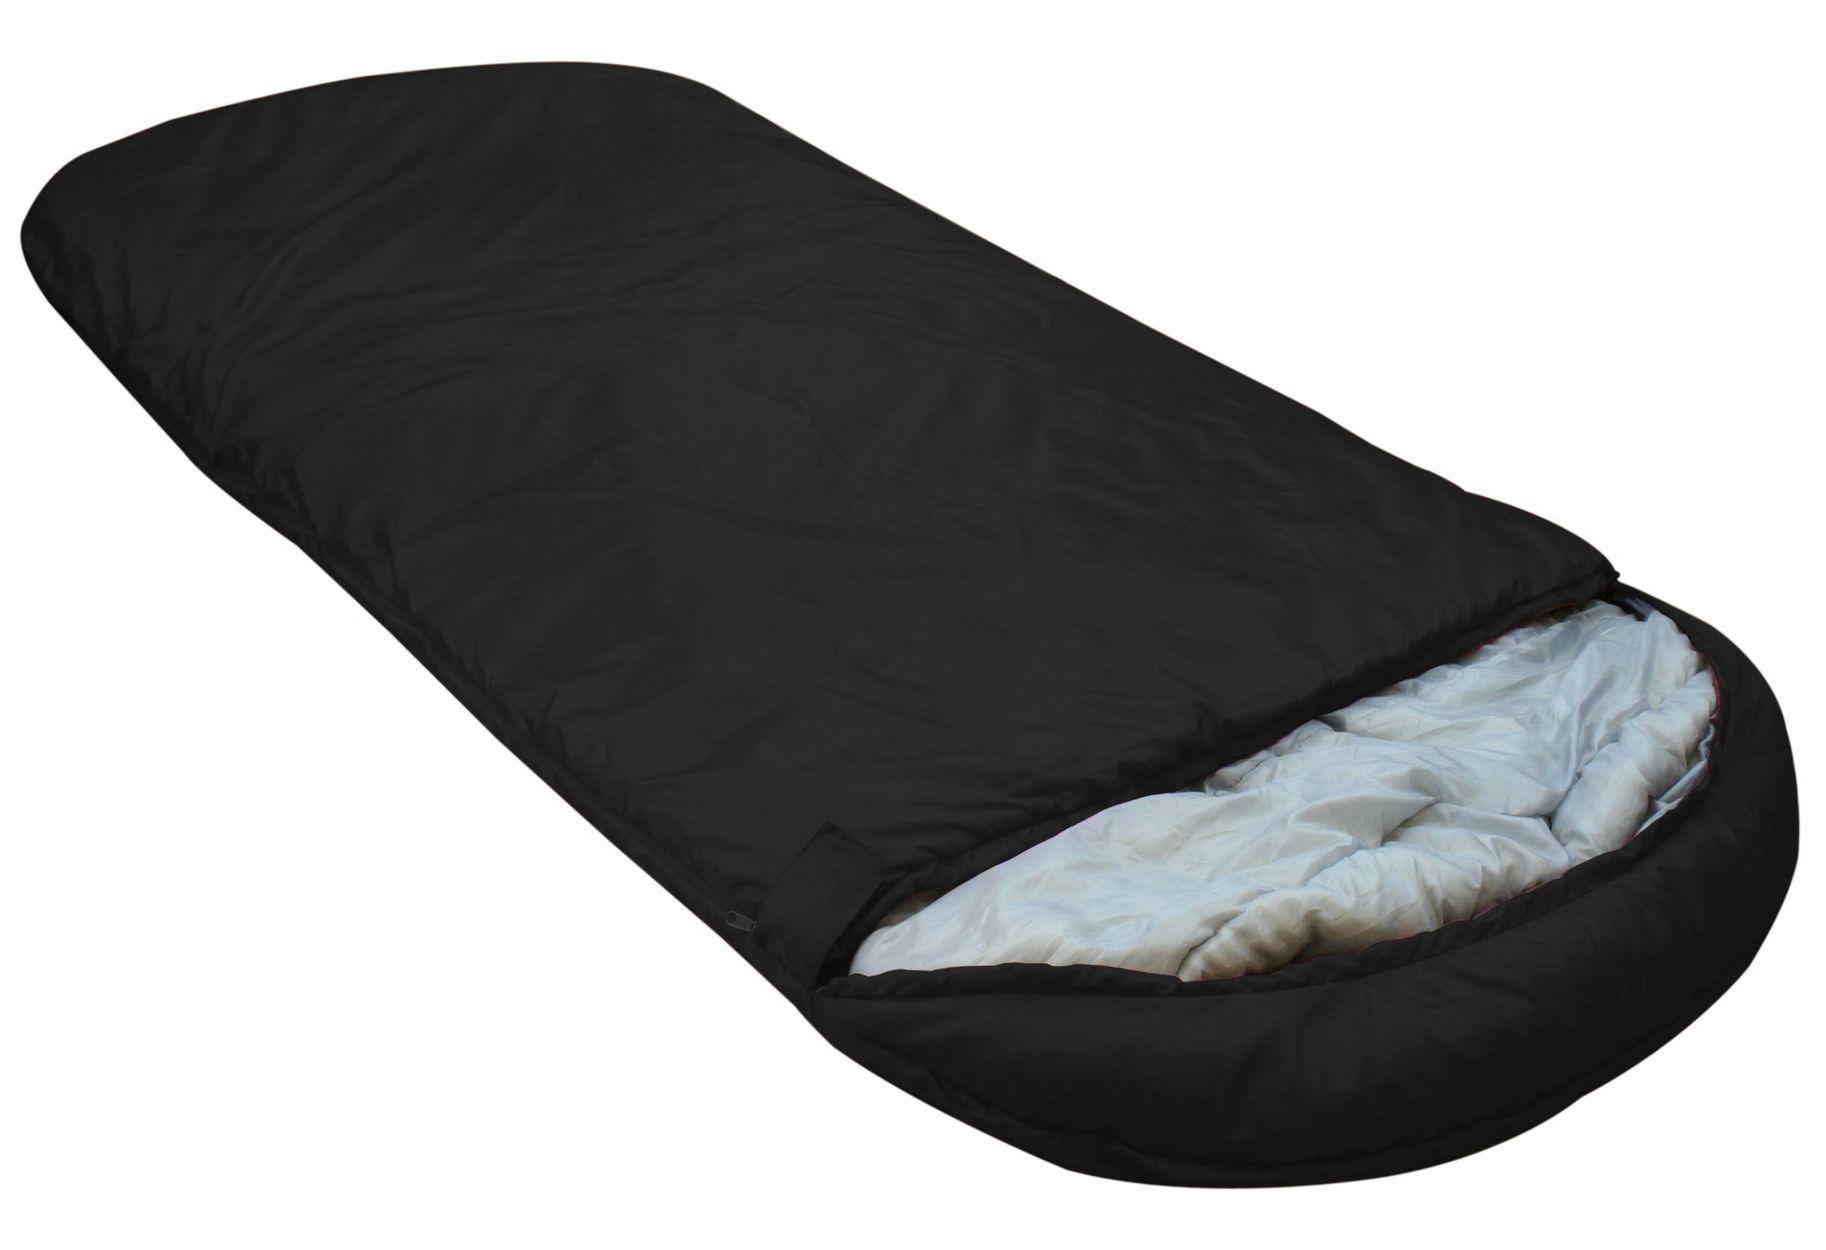 Highlander Single Big Sleep Cowl 250GSM Sleeping Bag - Black